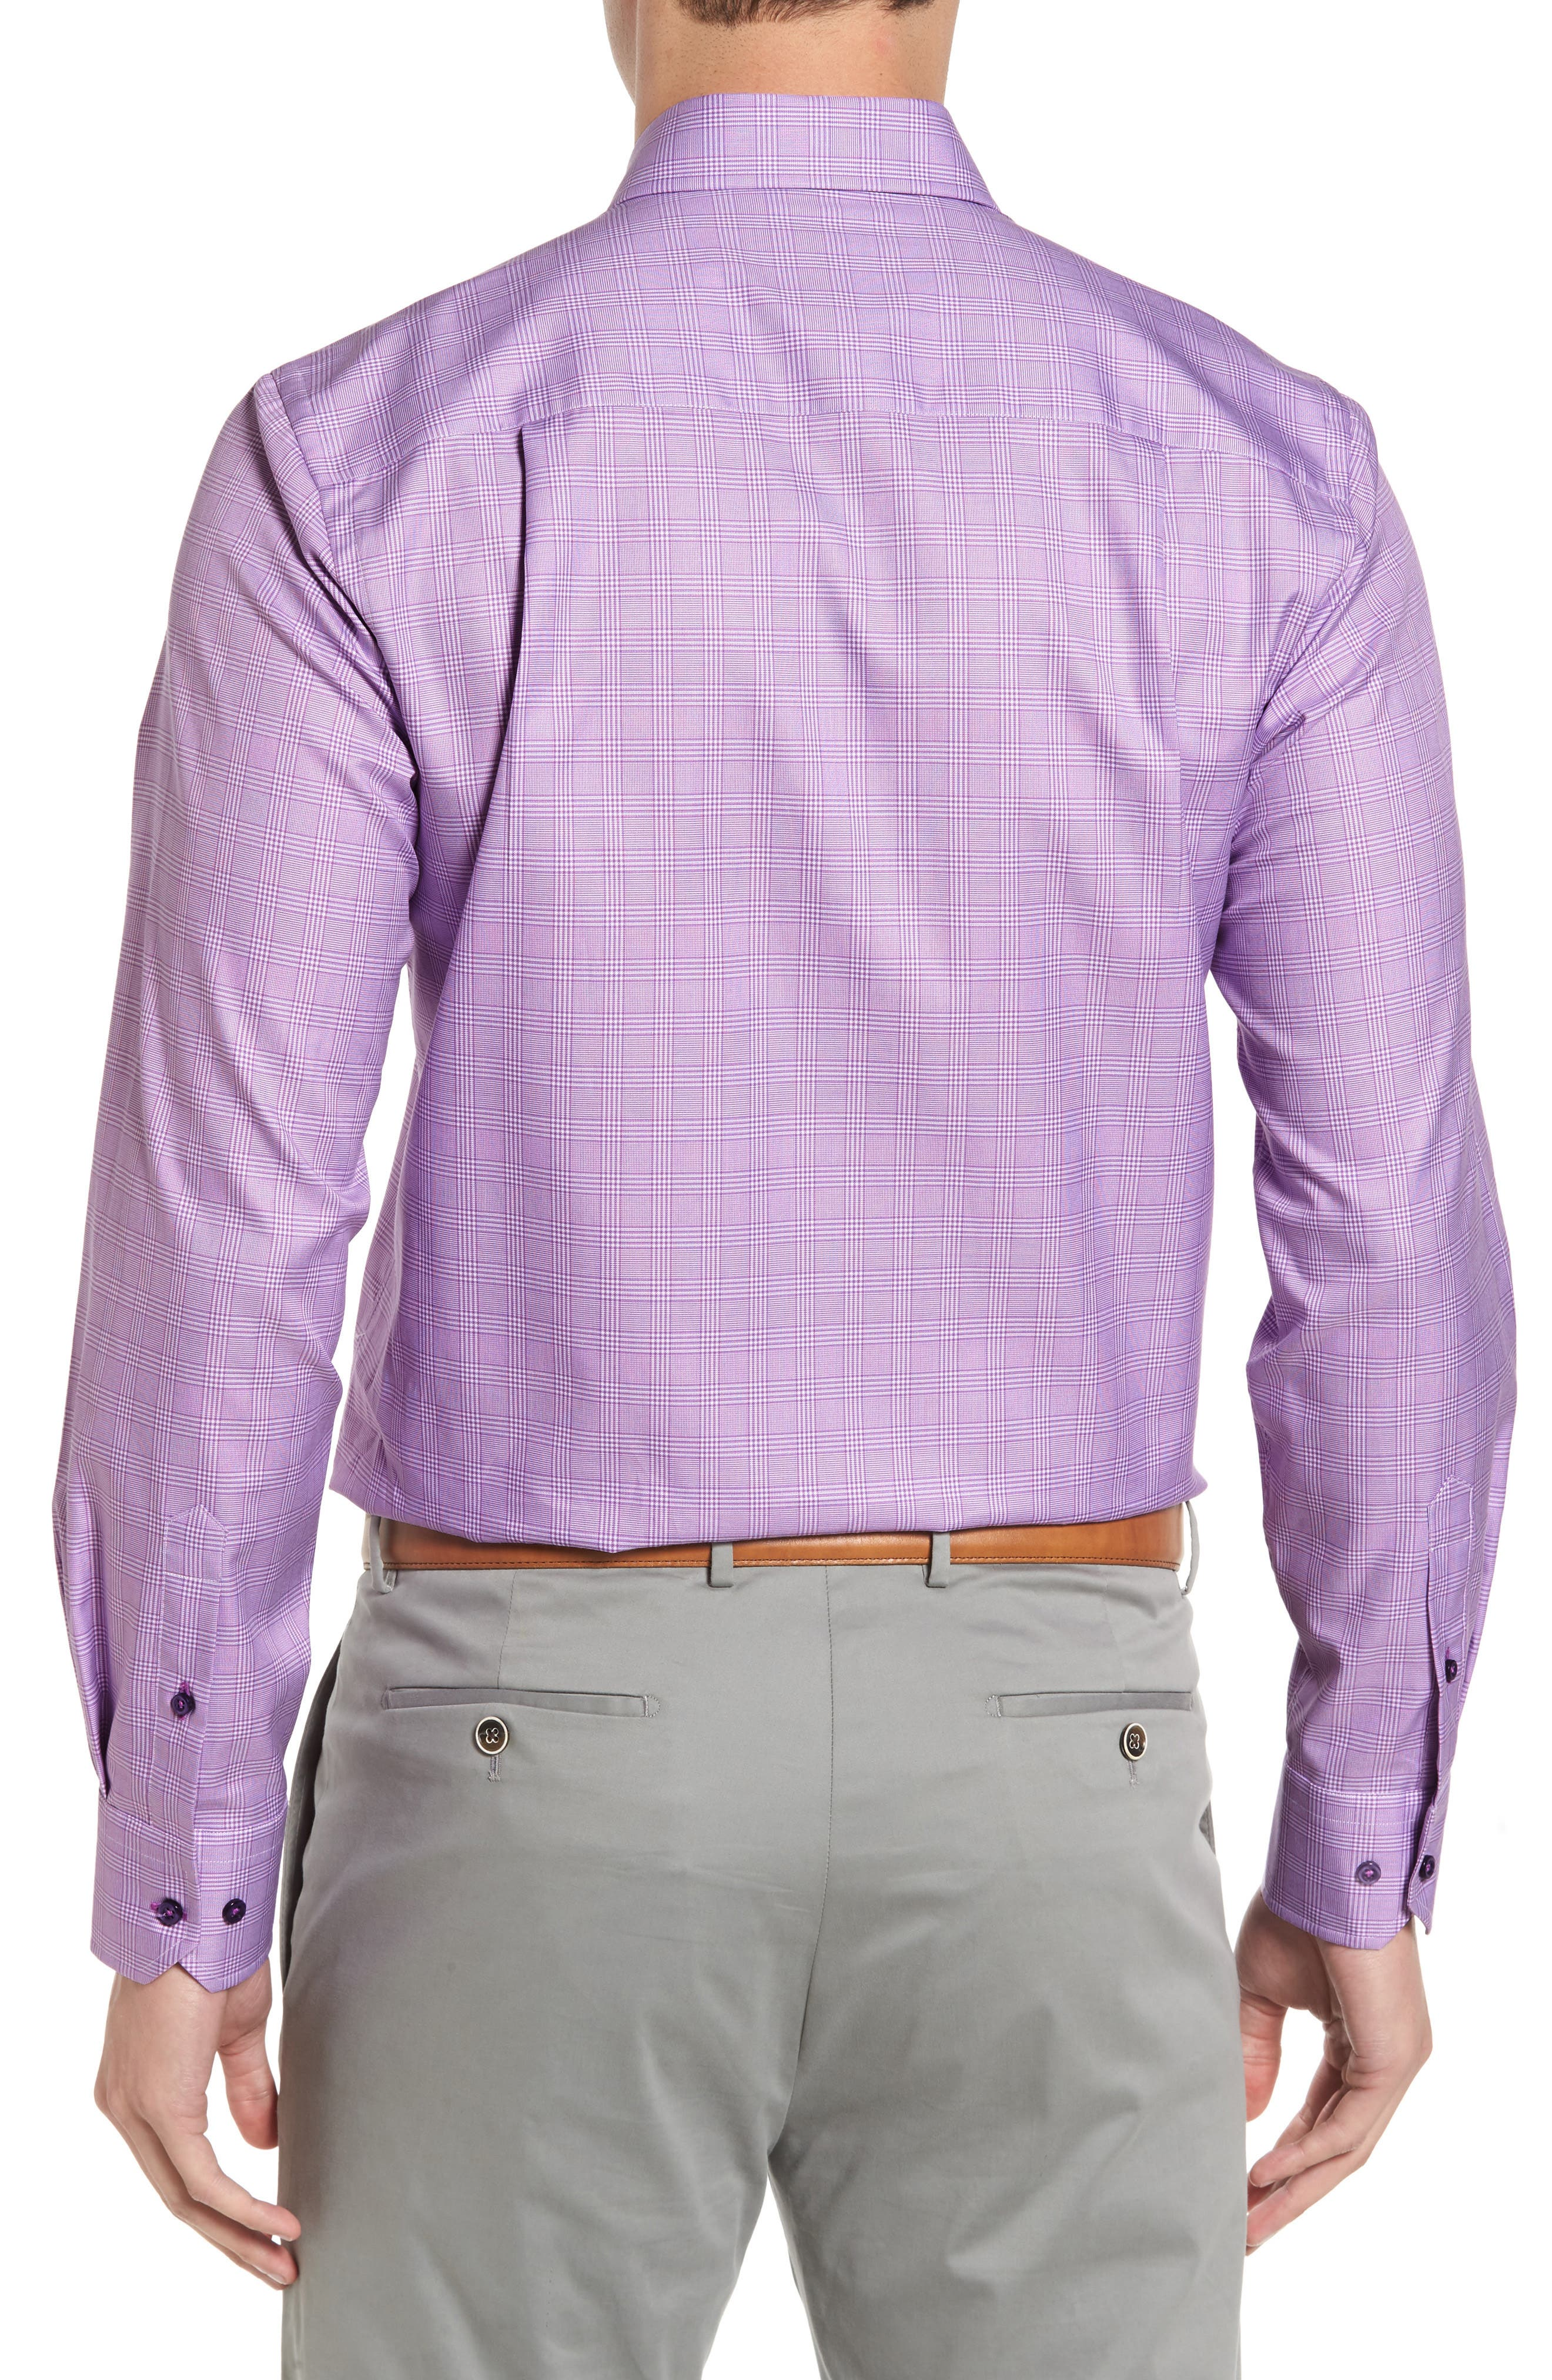 Regular Fit Plaid Sport Shirt,                             Alternate thumbnail 2, color,                             Lilac